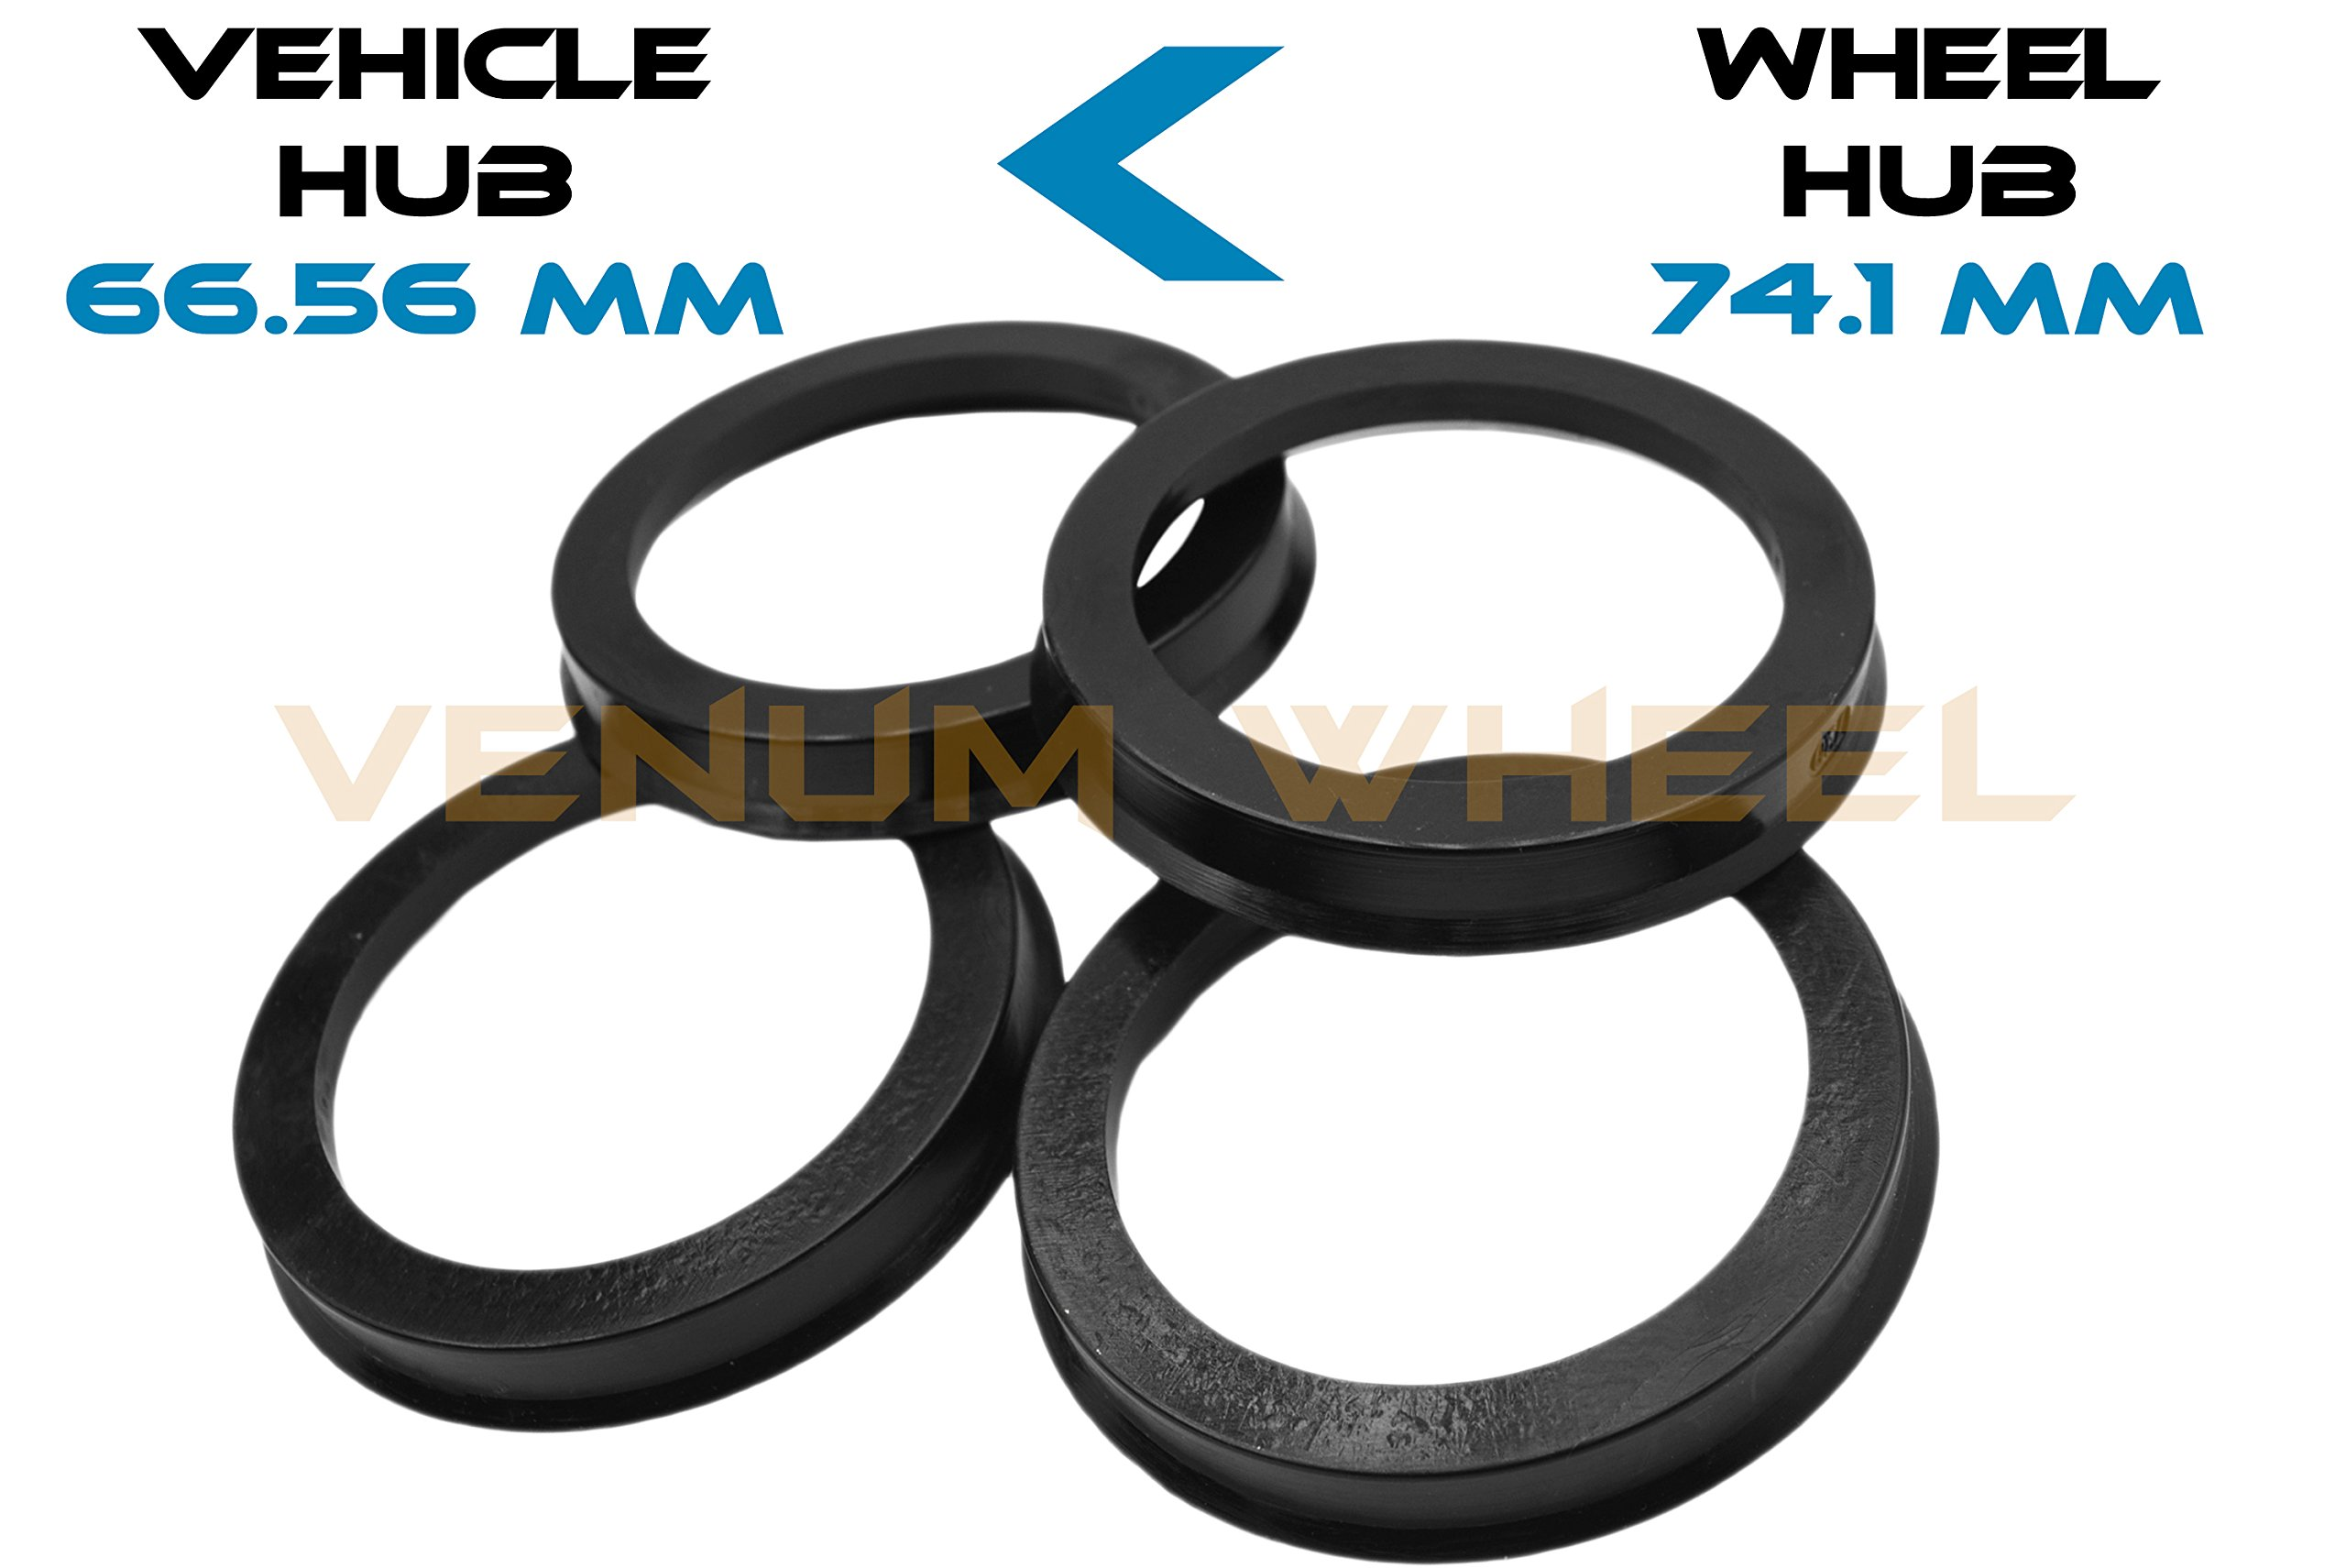 4 Hub Centric Rings 66.56 ID To 74.1 OD Black Polycarbonate Material ( Vehicle 66.56mm to Wheel 74.1mm)